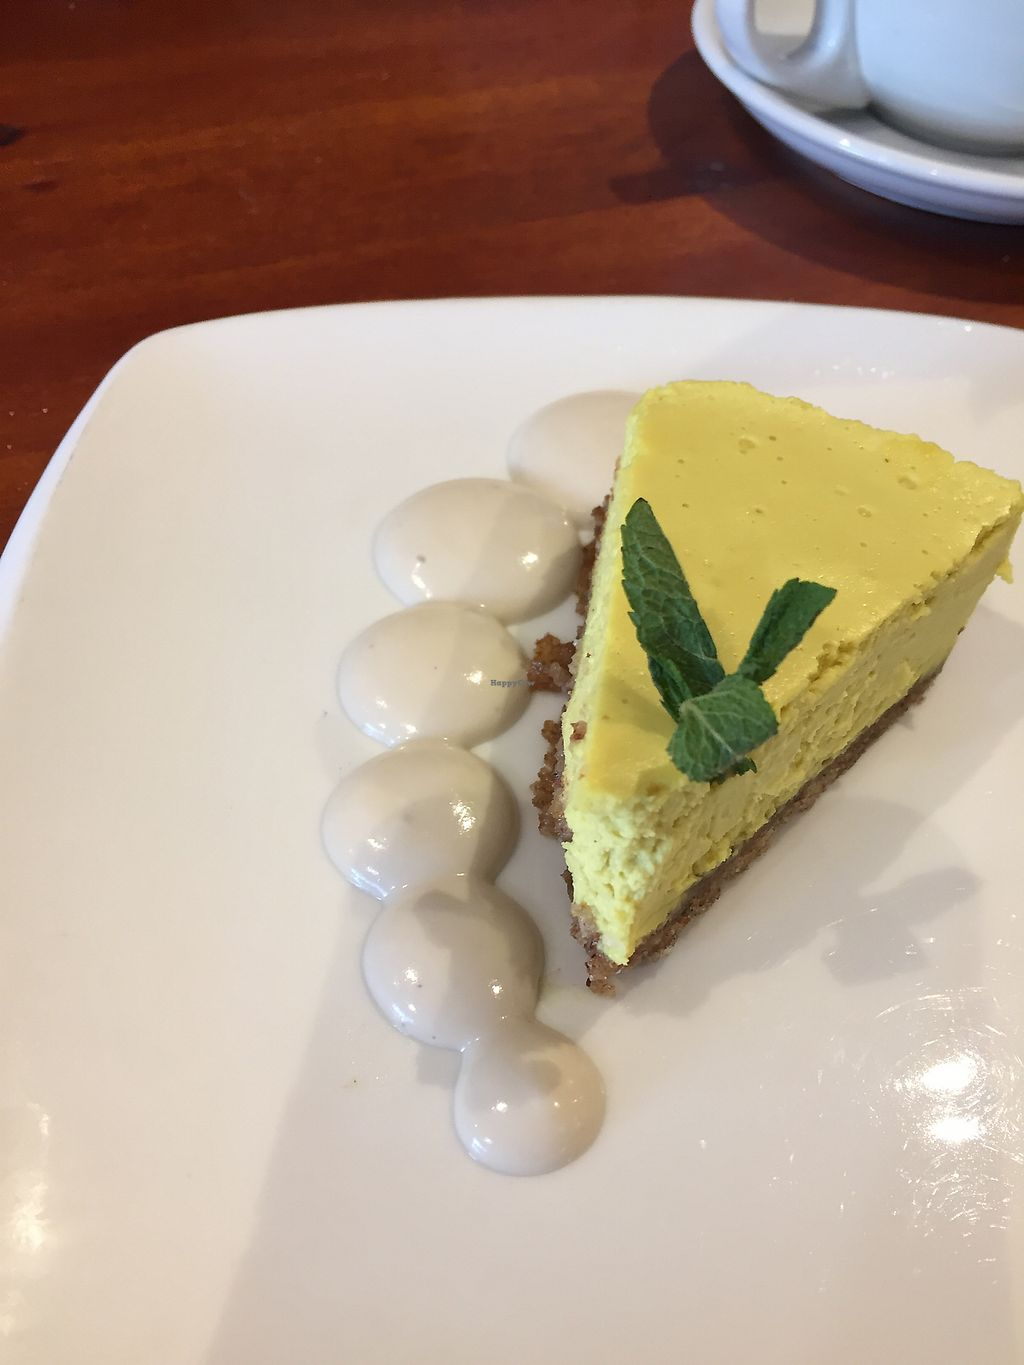 """Photo of Amrutha Lounge   by <a href=""""/members/profile/FionaHP"""">FionaHP</a> <br/>Delicious lemon cheesecake <br/> February 25, 2018  - <a href='/contact/abuse/image/112580/363796'>Report</a>"""